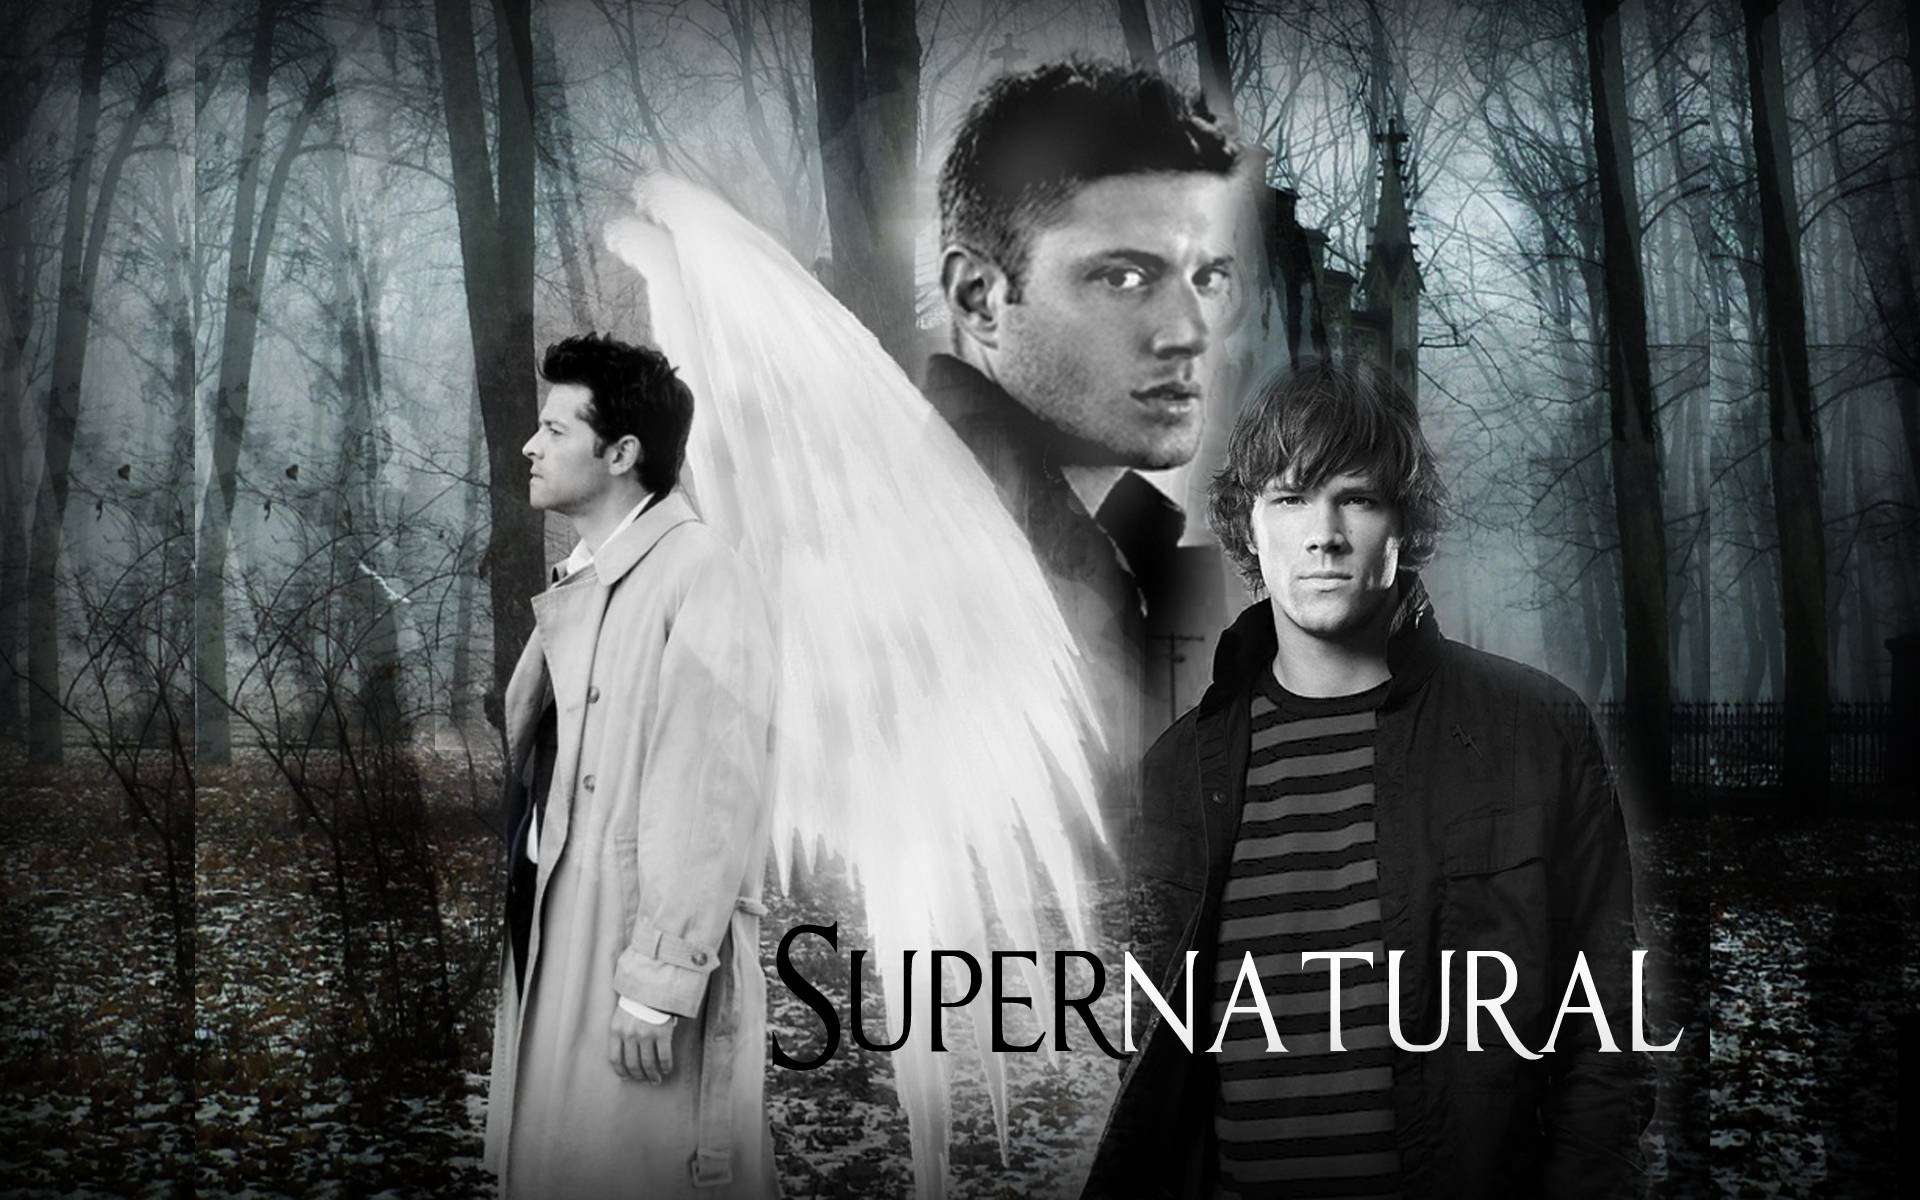 Supernatural Wallpaper for Desktop Page 2 of 3 wallpaperwiki